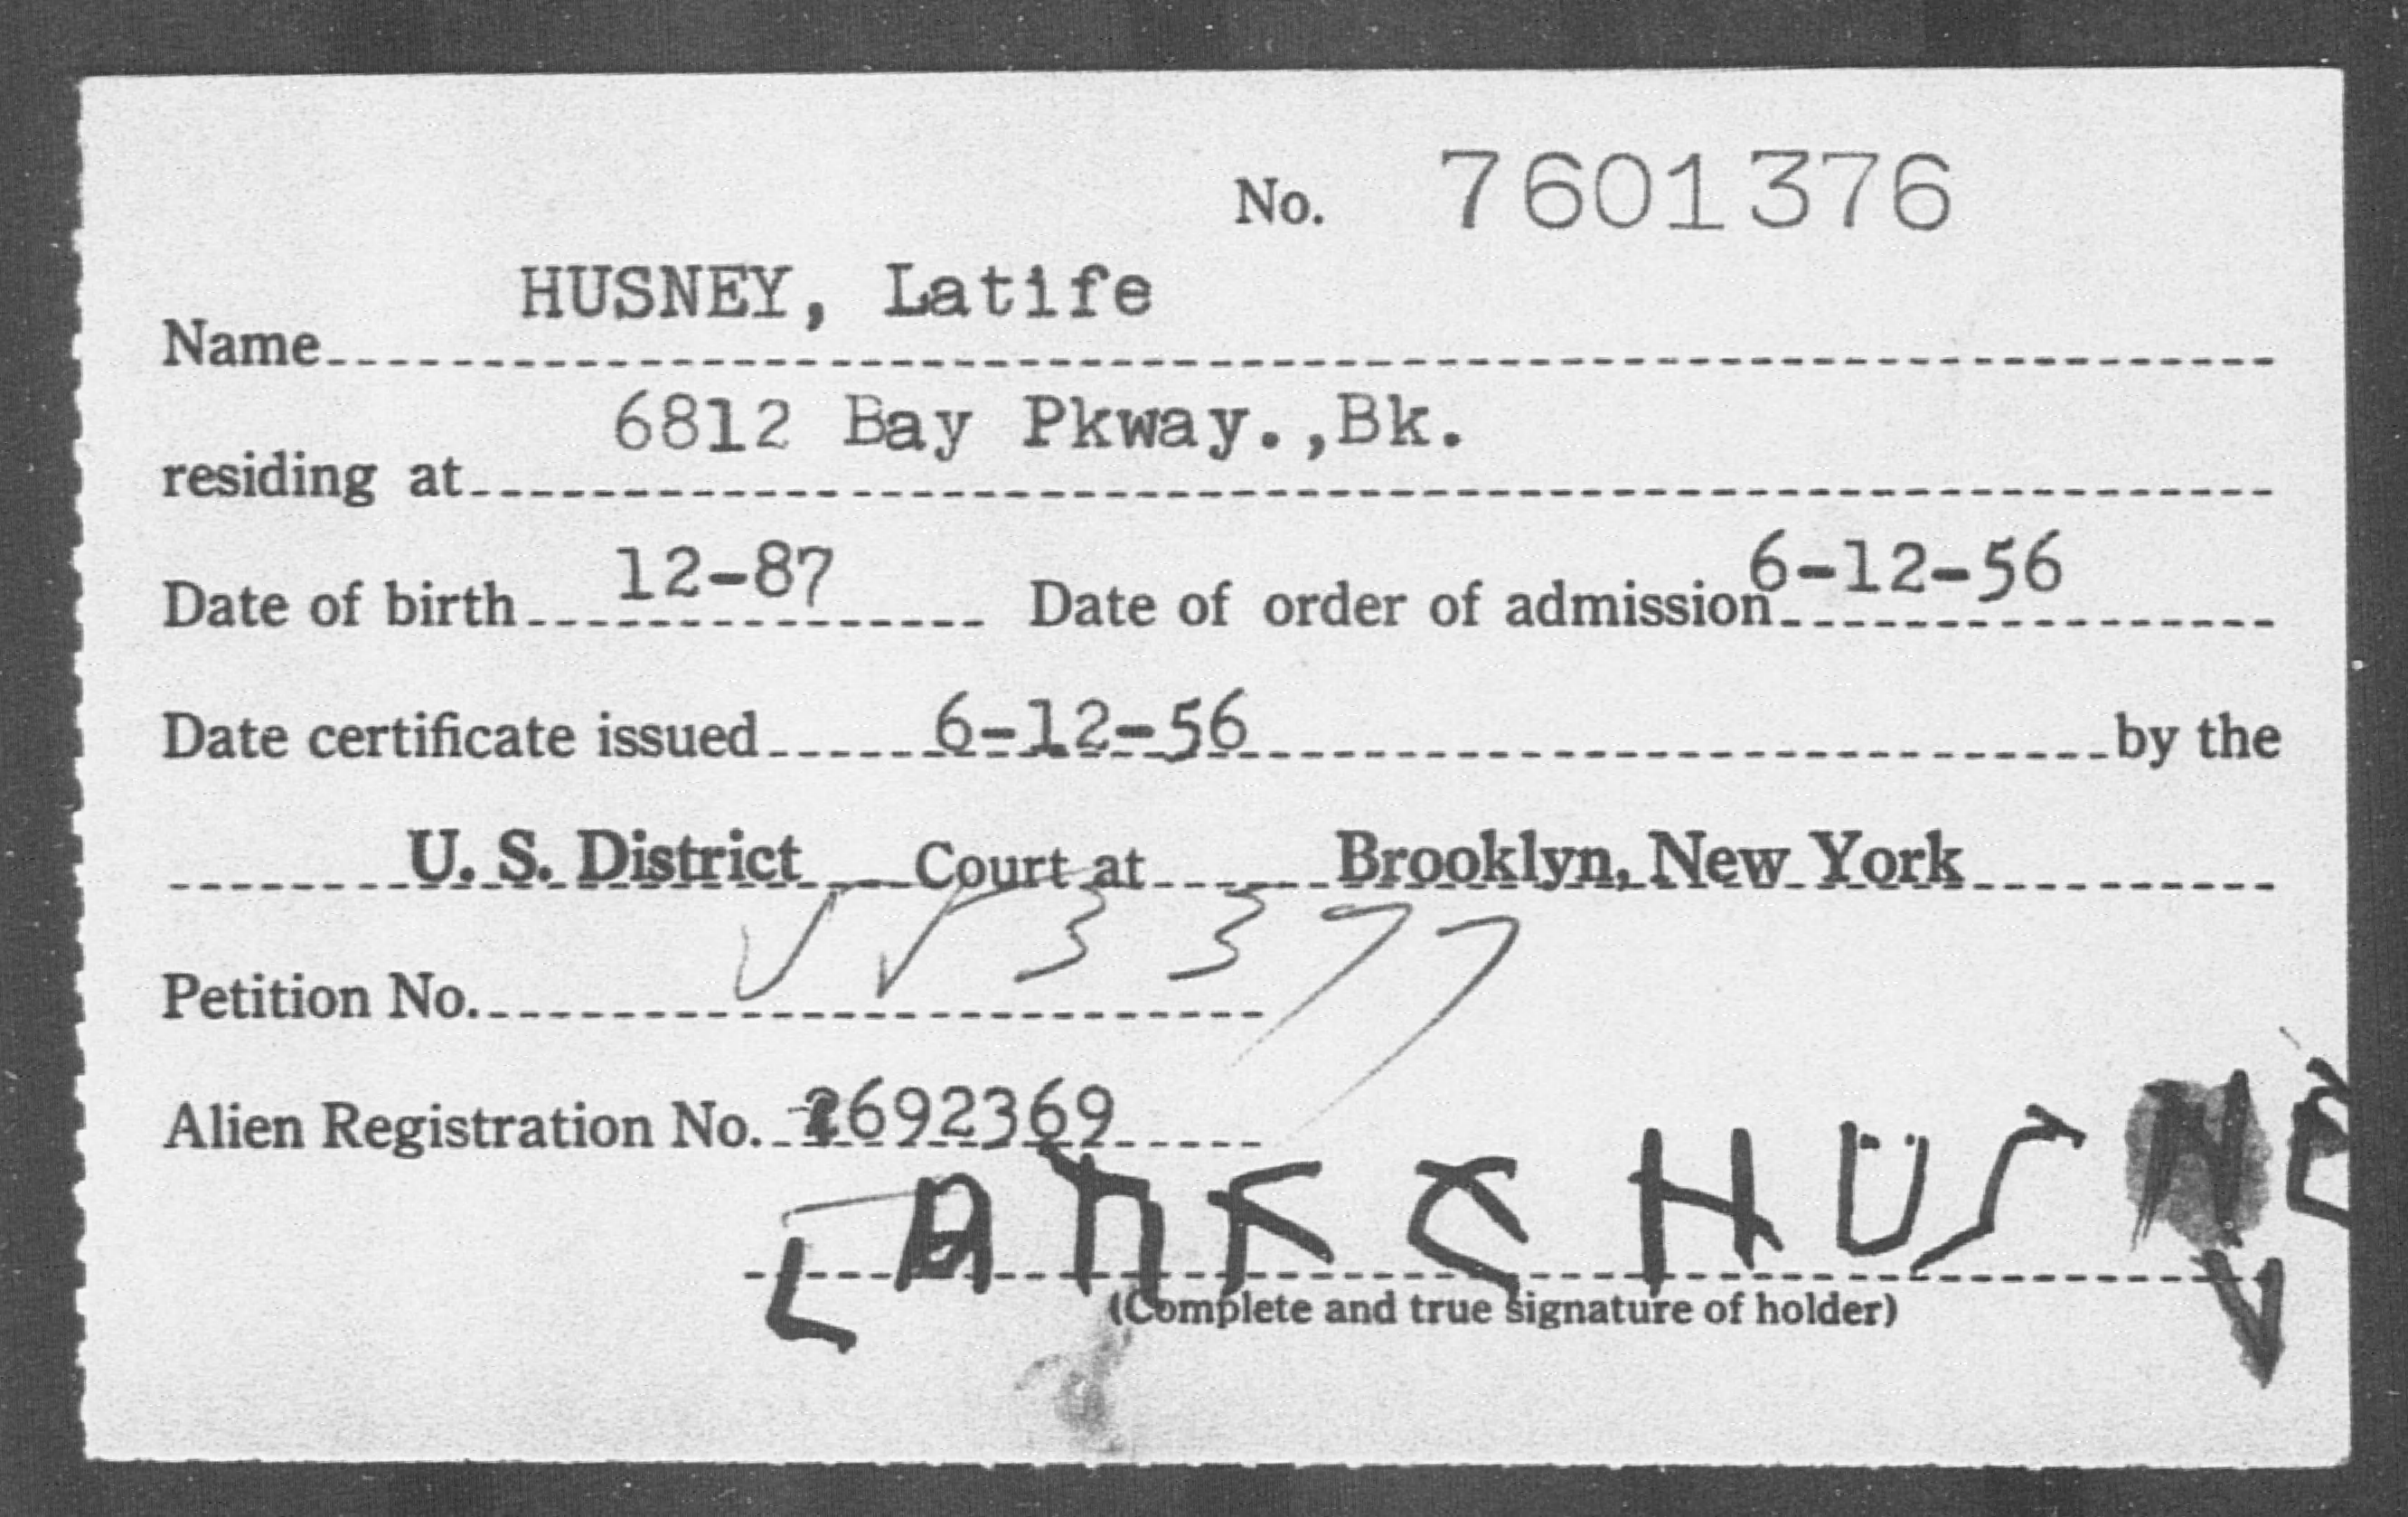 HUSNEY, Latife - Born: [BLANK], Naturalized: 1956